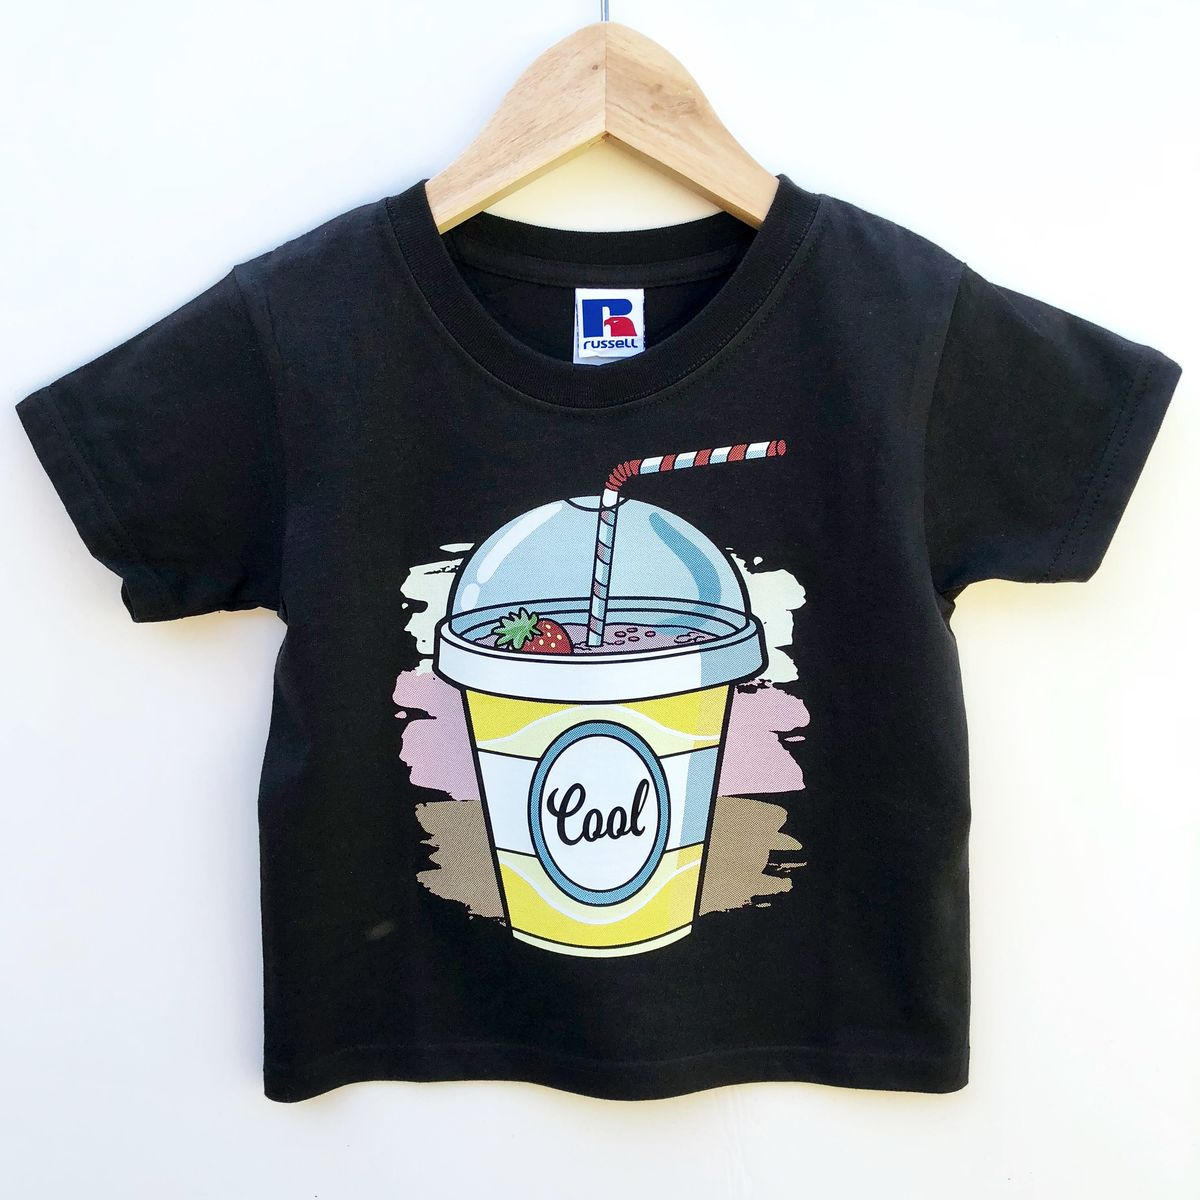 Milkshake Cool Kids Black T-Shirt (various sizes) - product images  of